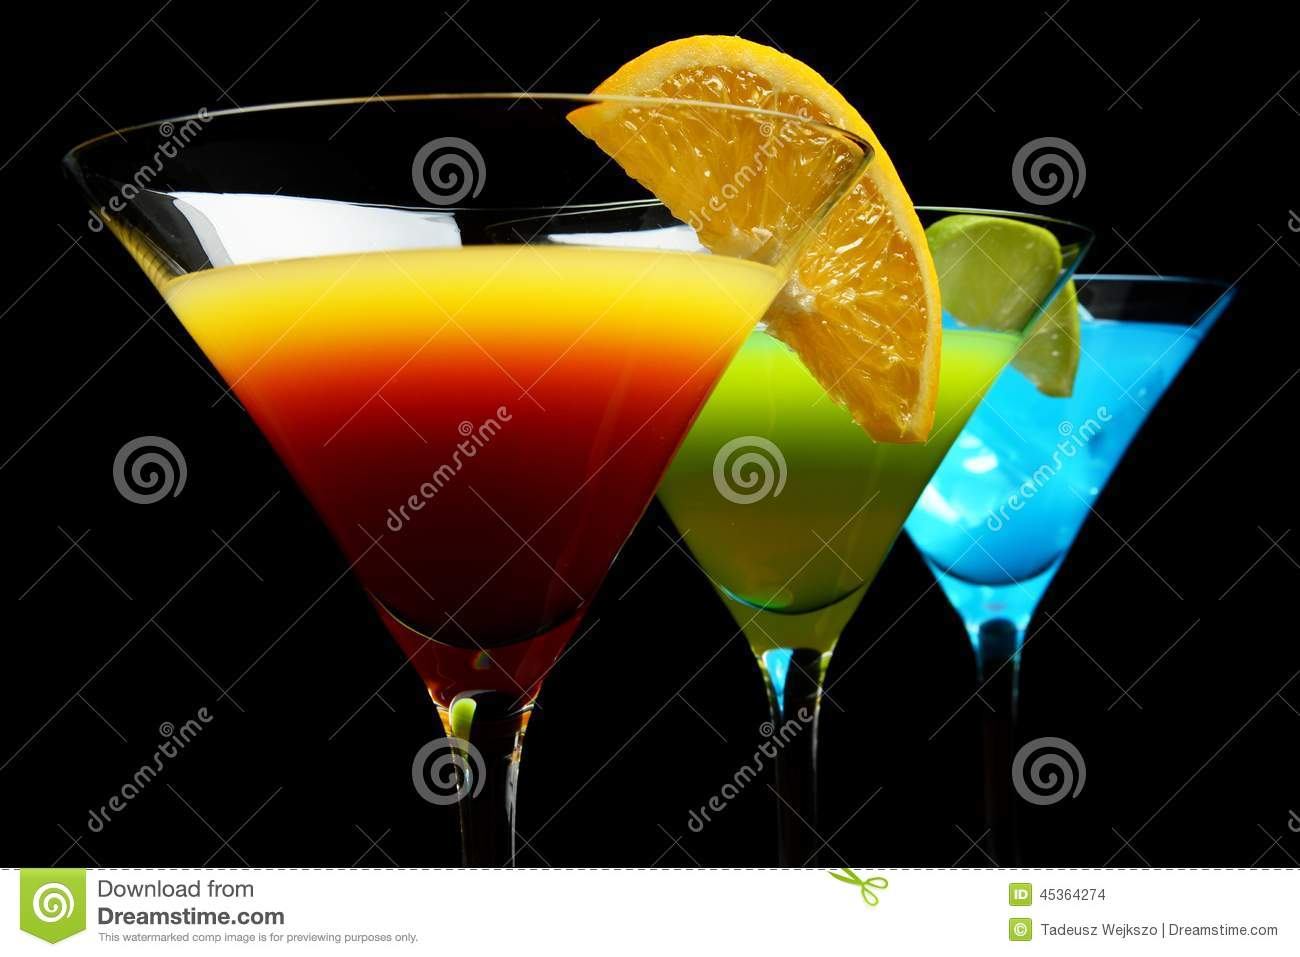 Close-up view of cosmo drinks on a party